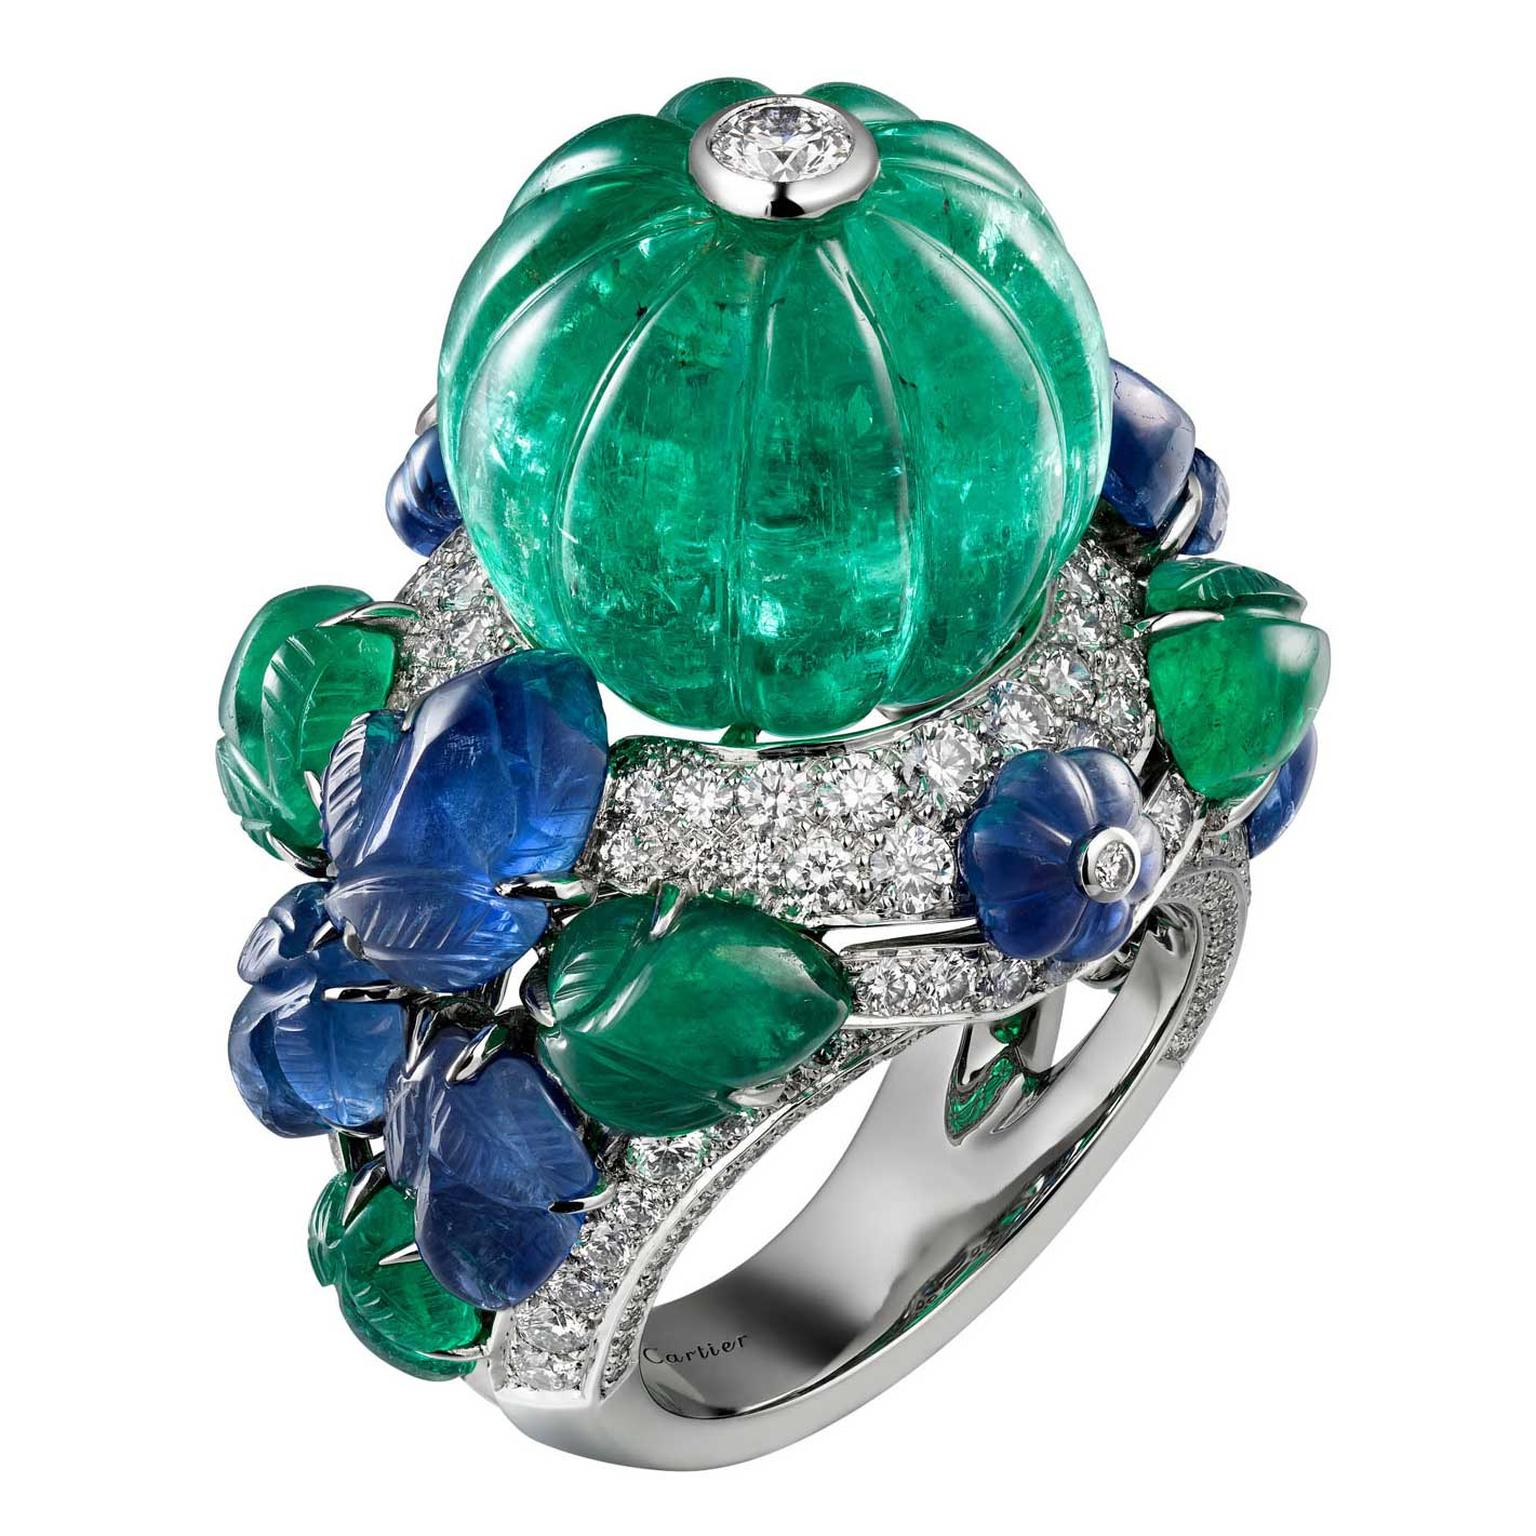 Cartier Étourdissant emerald, sapphire and diamond ring